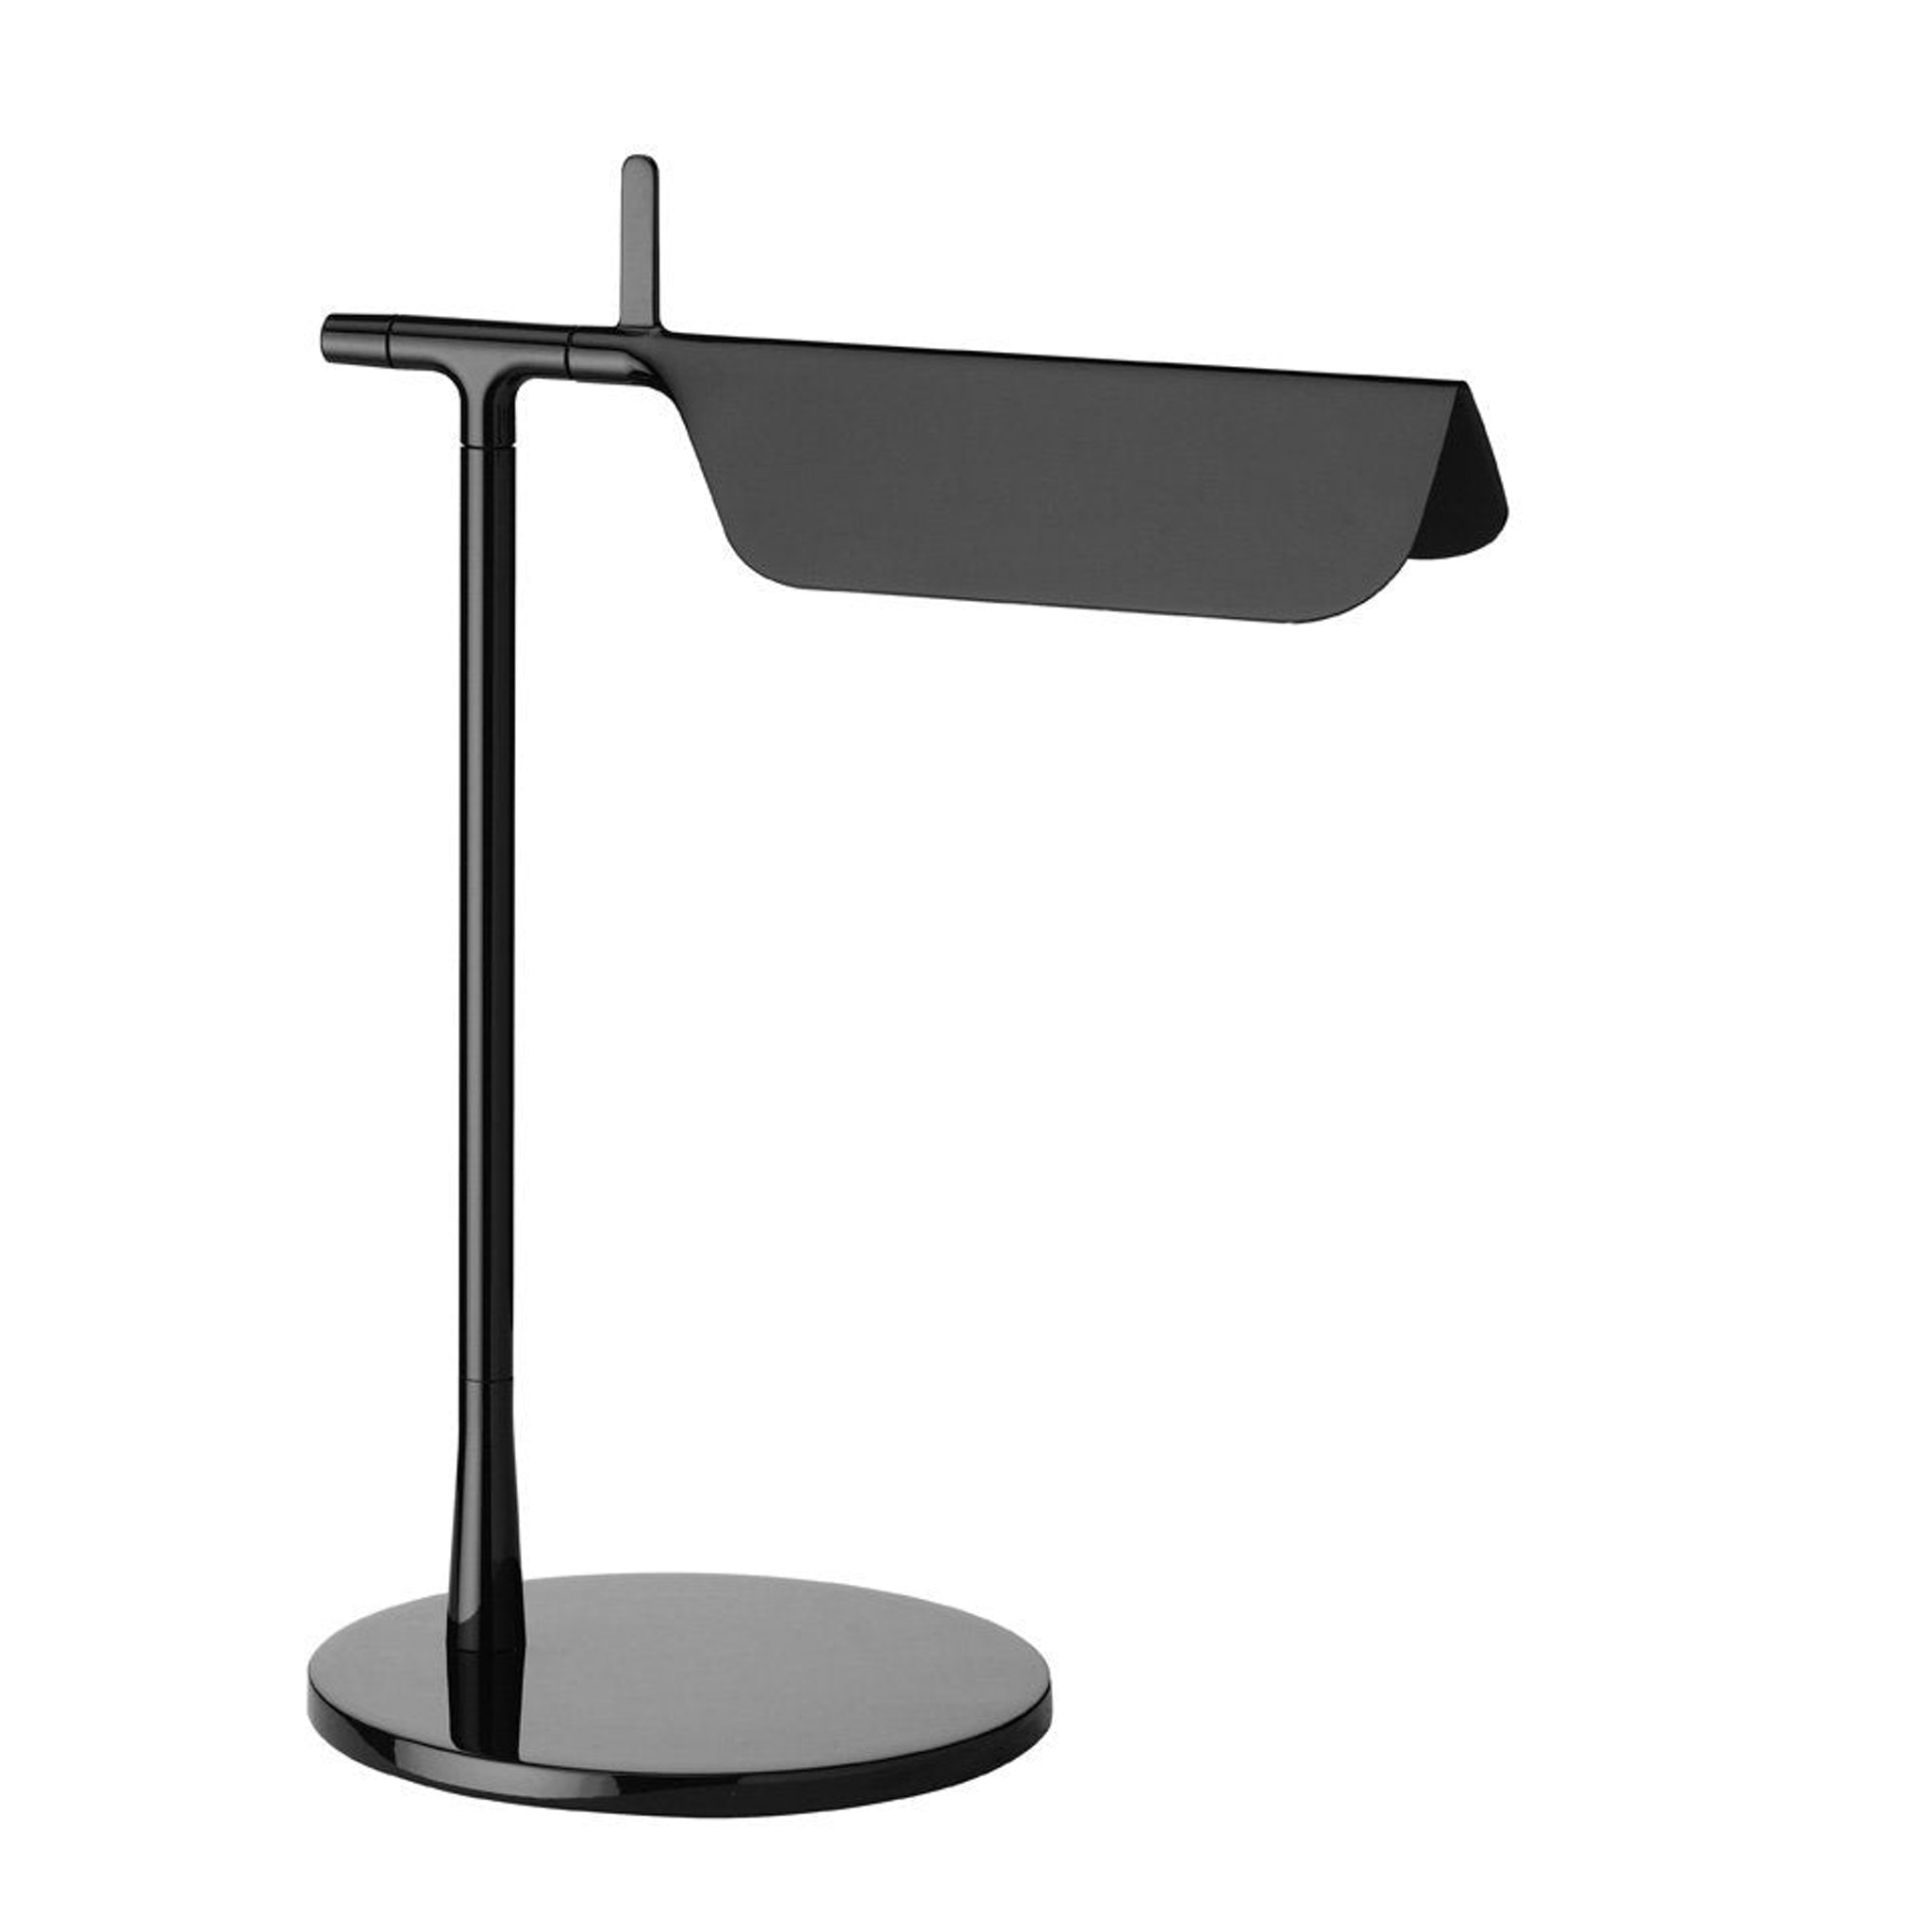 Tab Table Light by Barber Osgerby